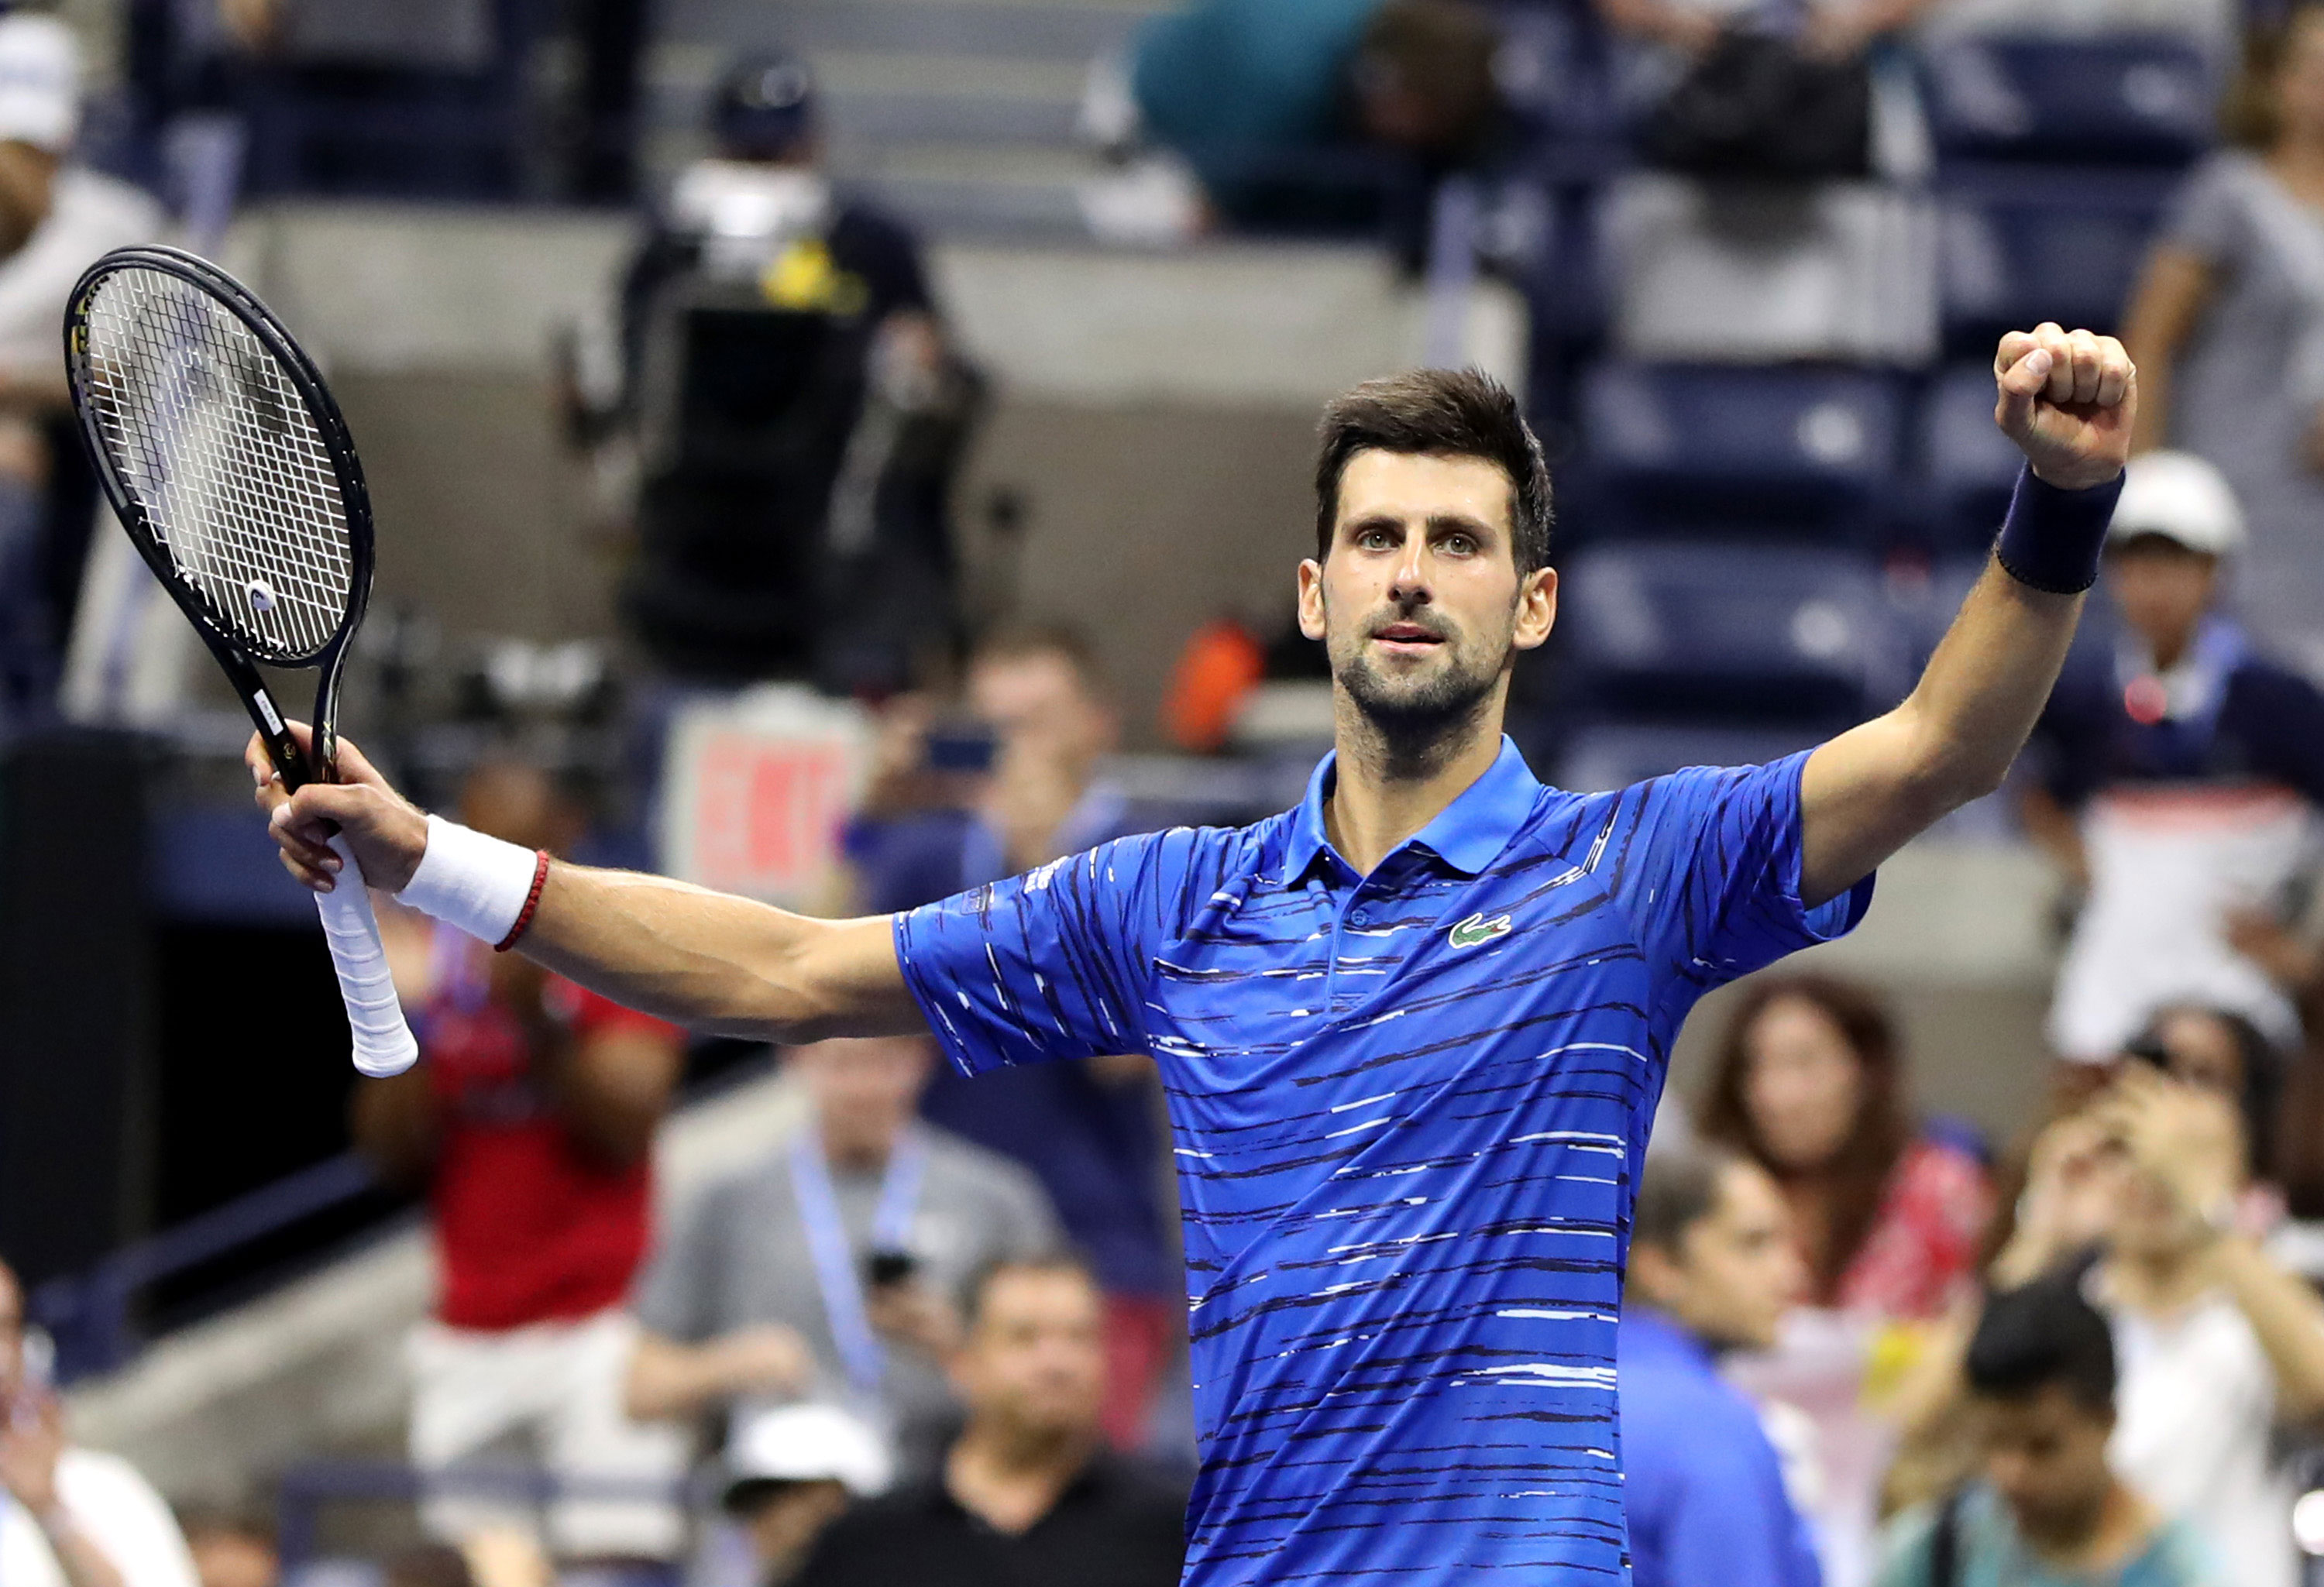 Novak Djokovic will play in the US Open after testing positive for Covid-19 in June